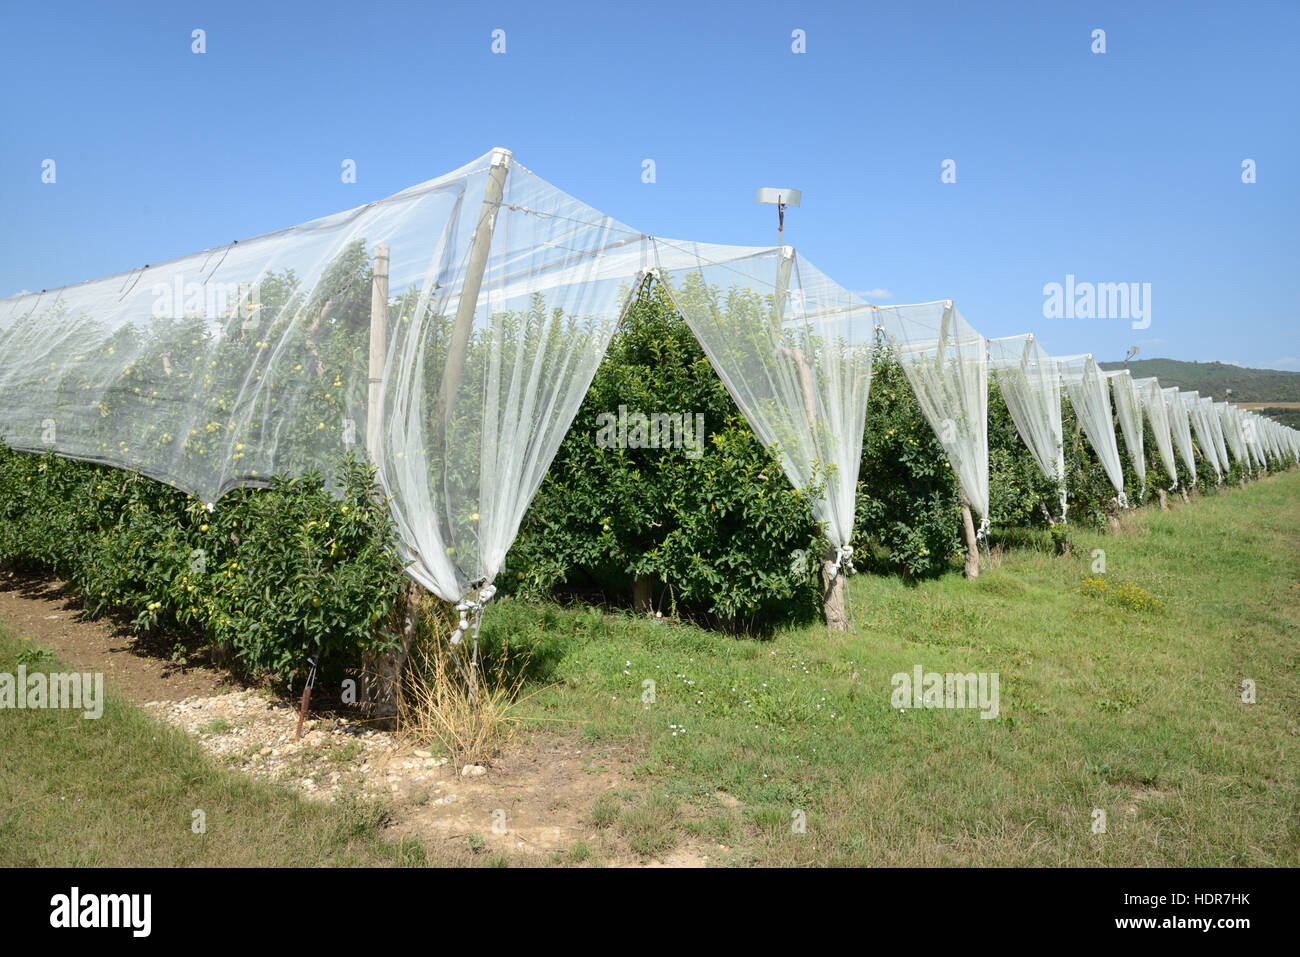 Crop Protection Nets to Keep Birds off Apple Orchards in an area of Intensive Fruit Production Durance Valley Provence - Stock Image